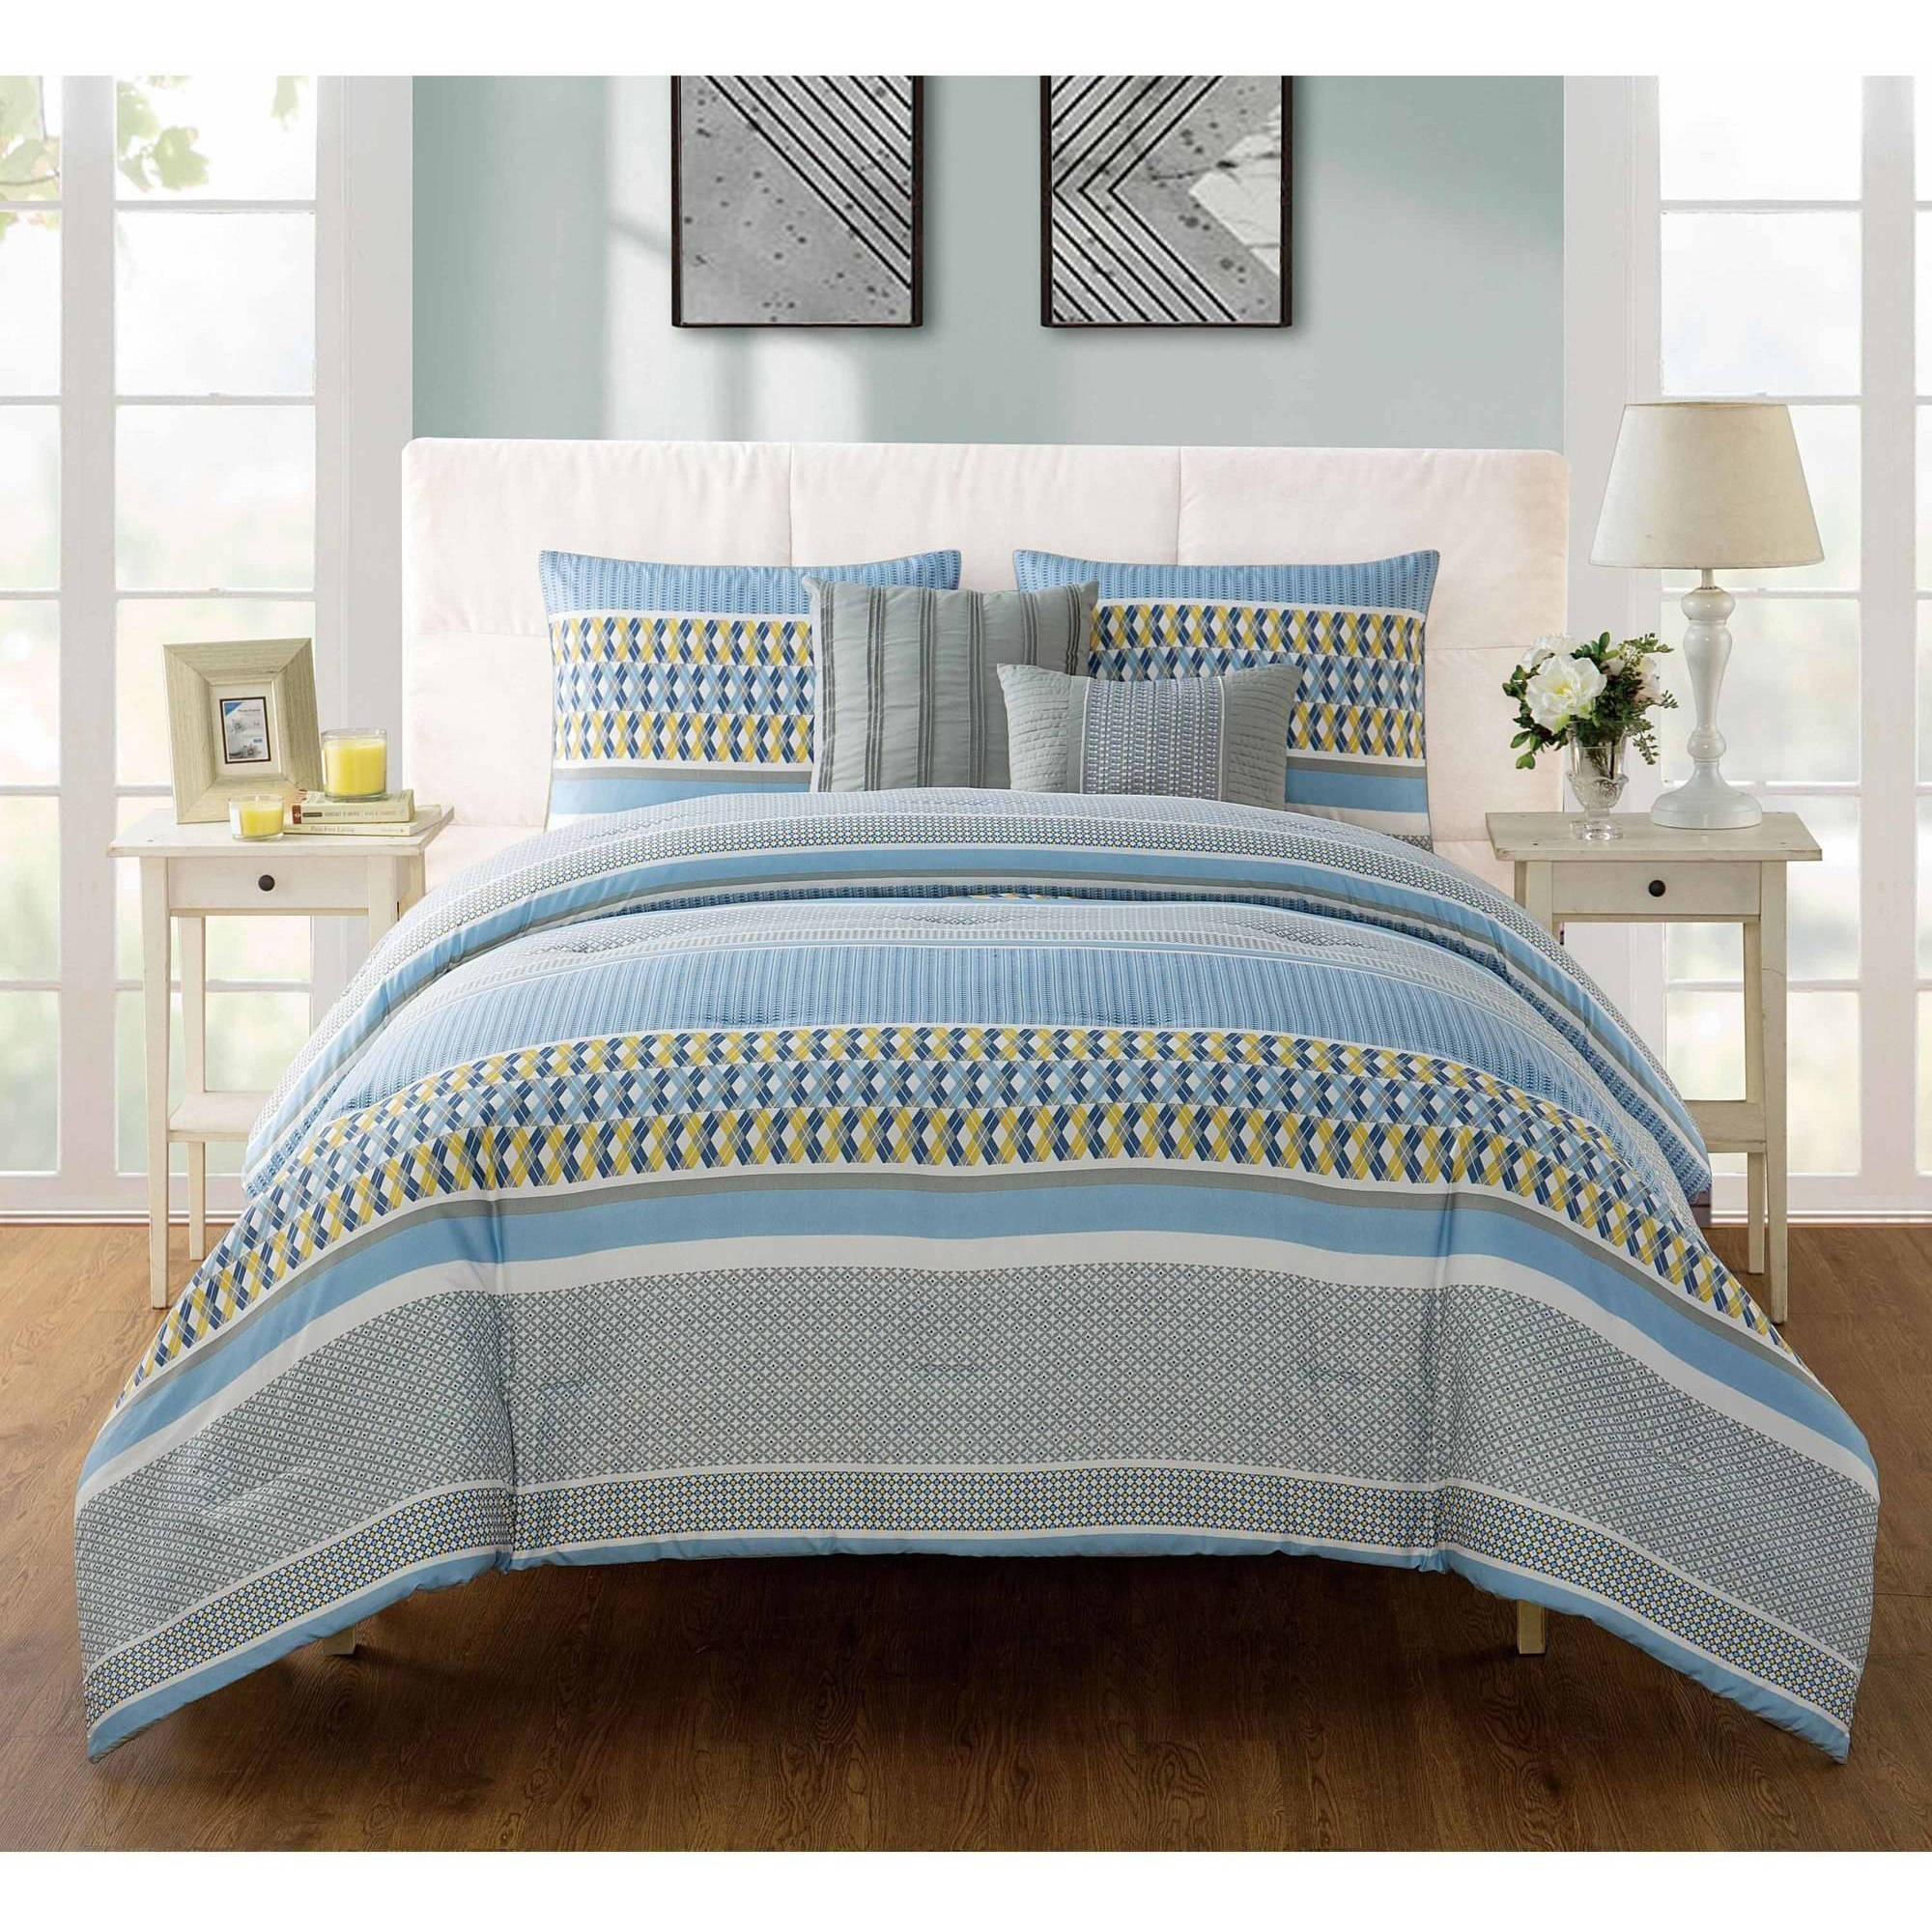 VCNY Home Marcus Geometric Bedding Comforter Set with Decorative Pillows, Multiple Colors and Sizes Available